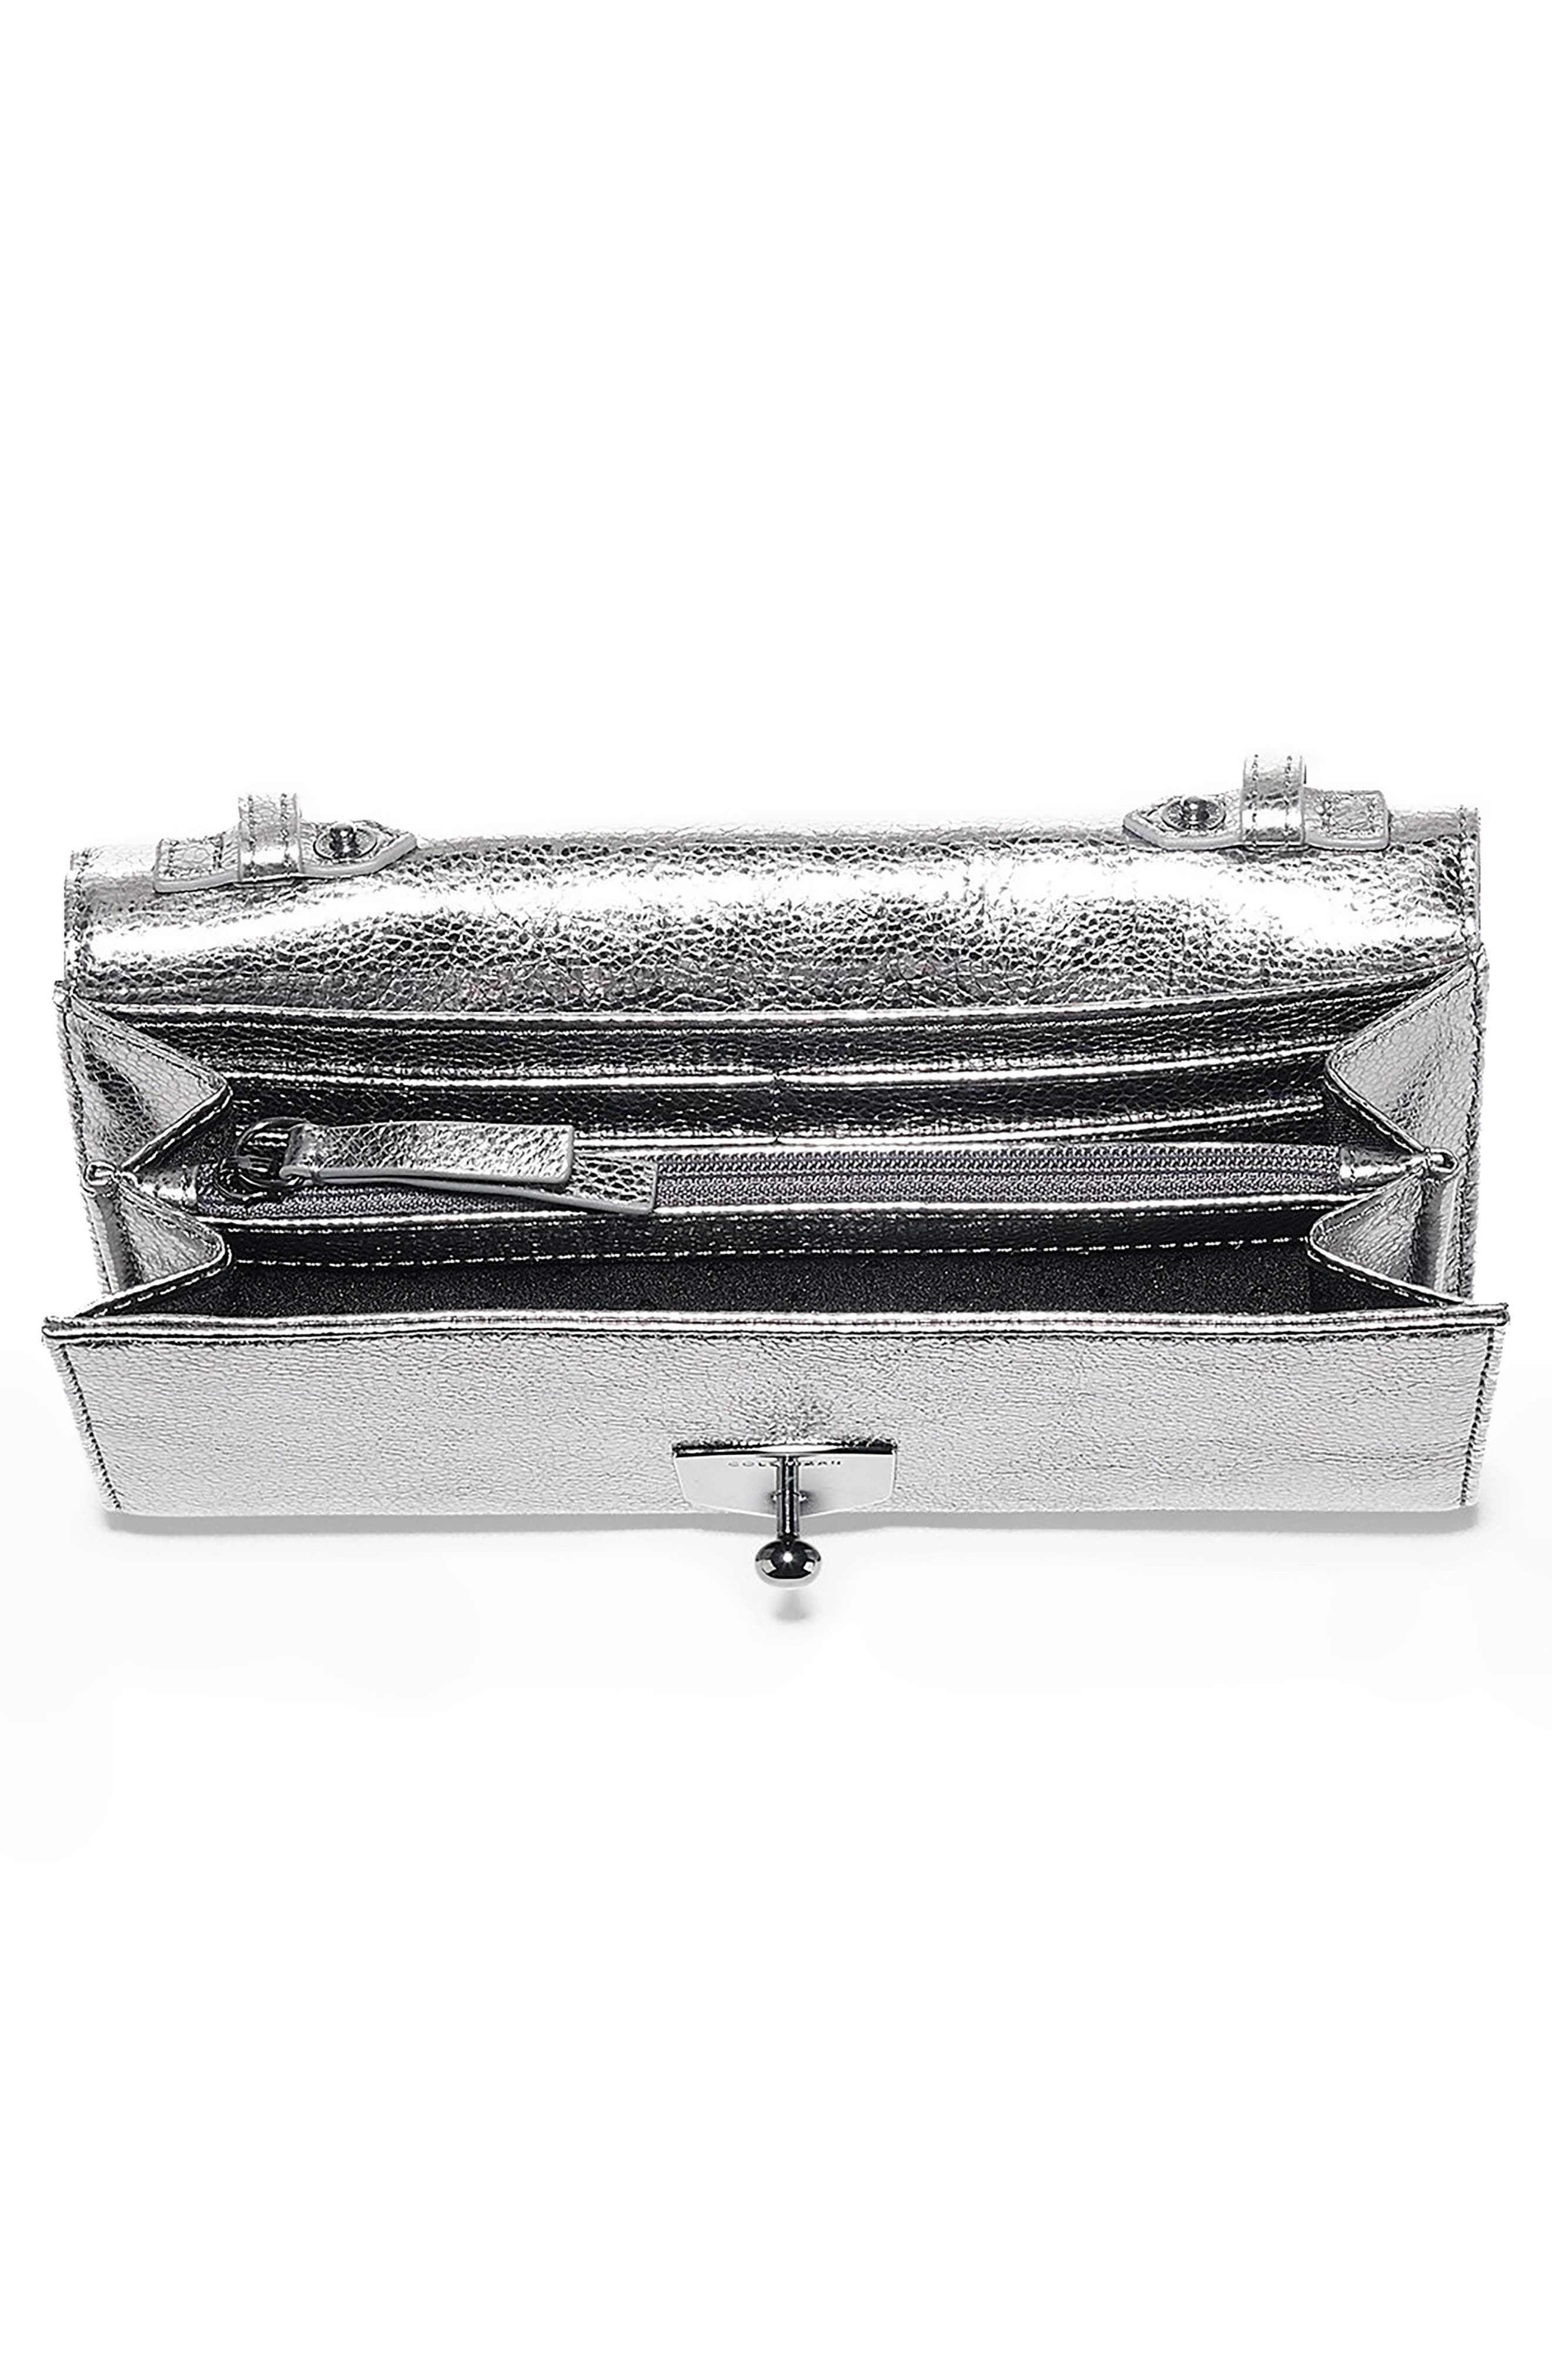 Marli Studded Metallic Leather Convertible Smartphone Clutch,                             Alternate thumbnail 3, color,                             Anthracite